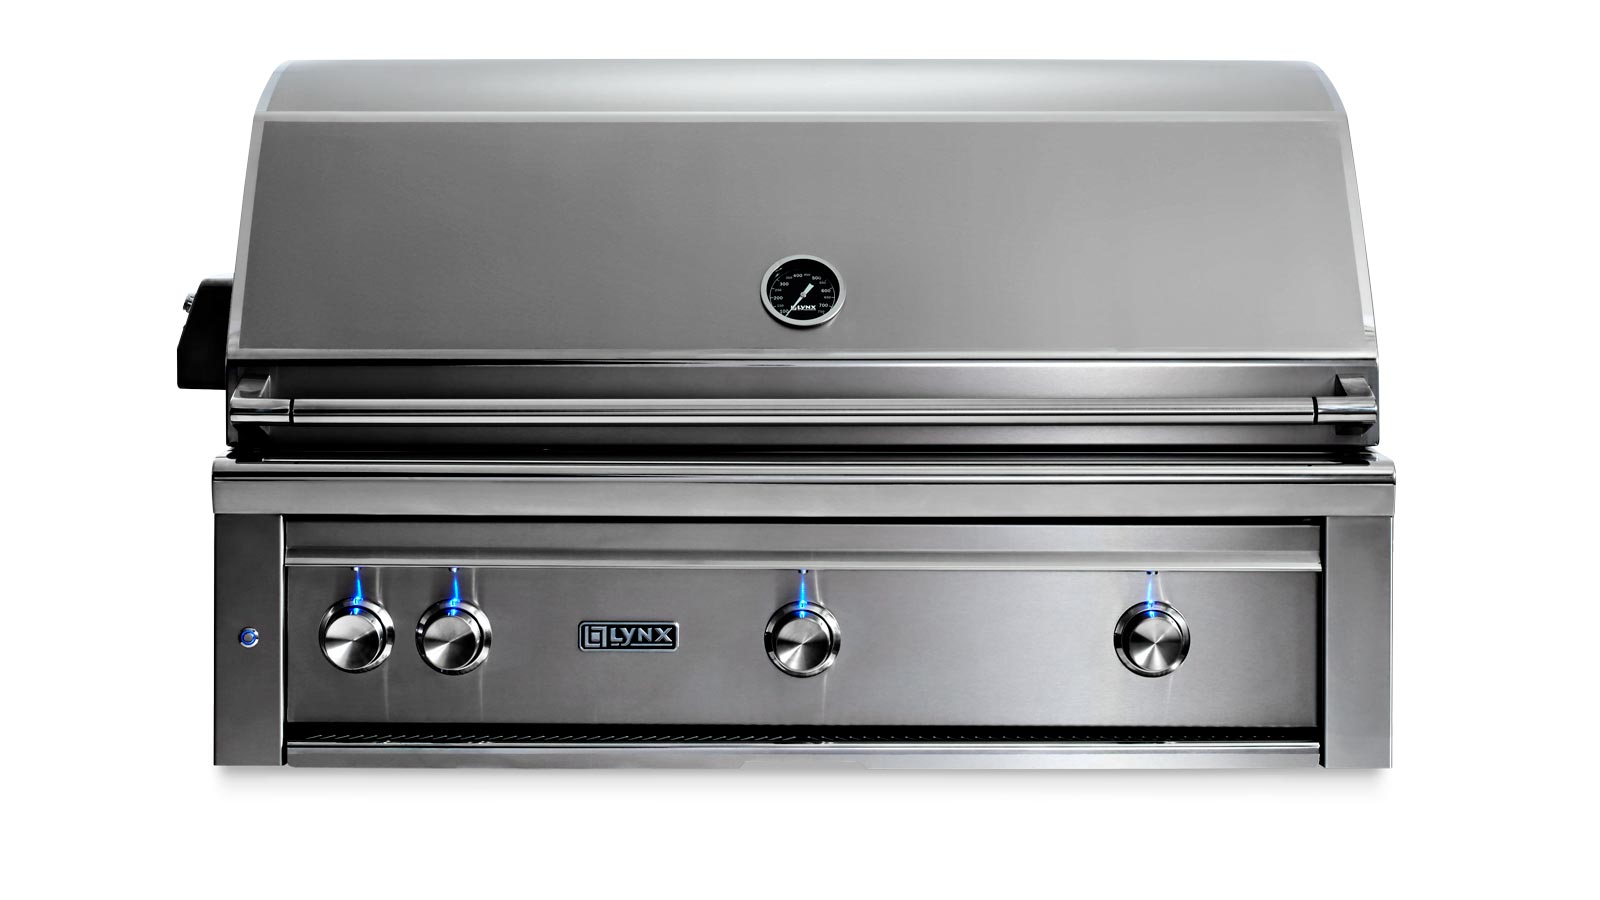 "Lynx Professional 42"" Built-in Grill"